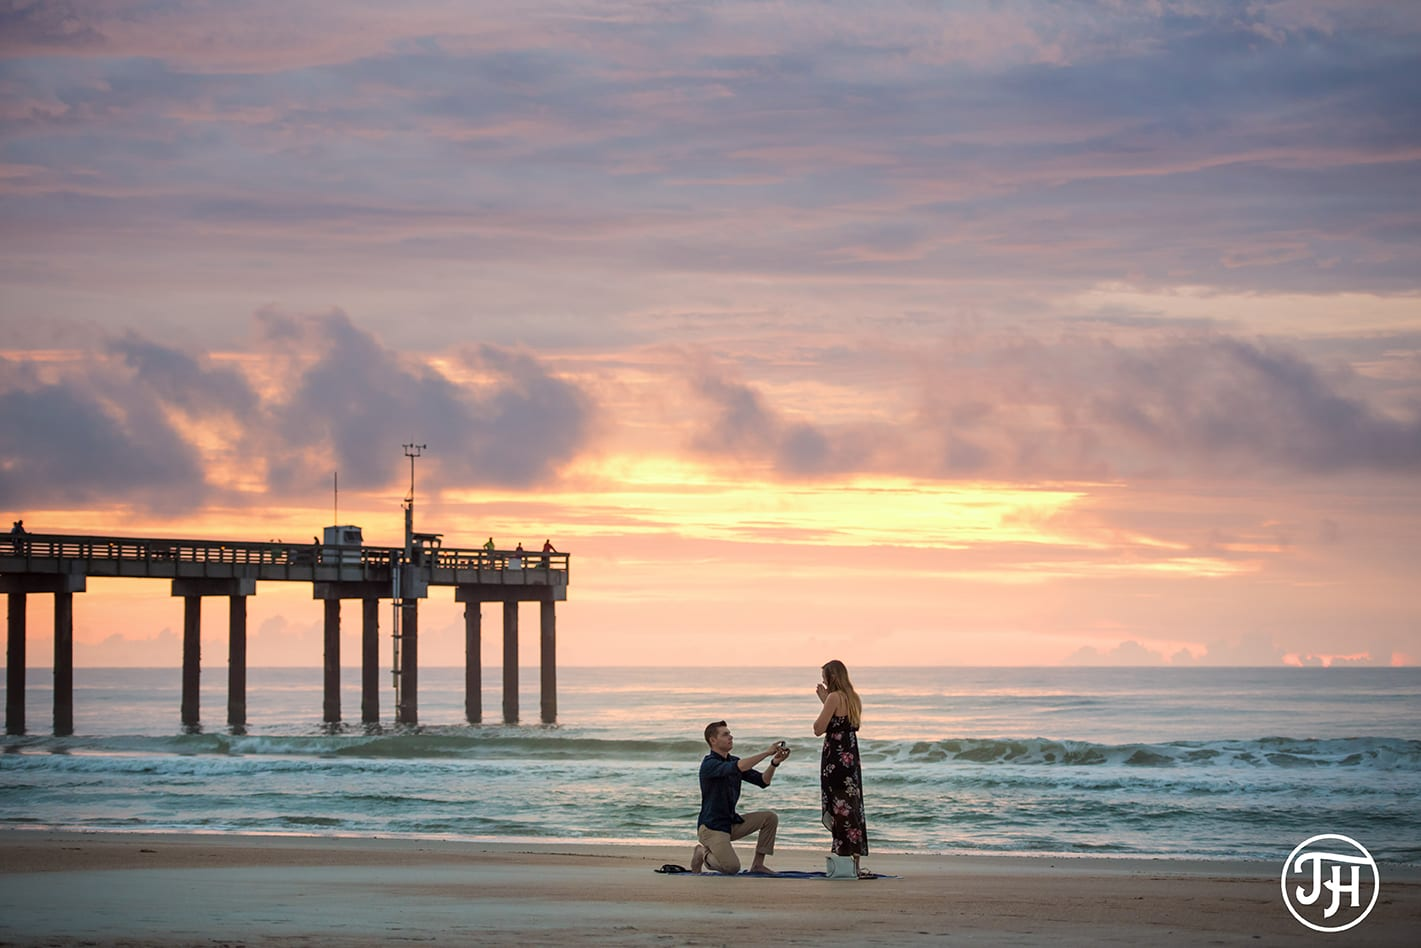 St. Augustine beach proposal | St. Augustine proposal ideas | Treasury on the Plaza